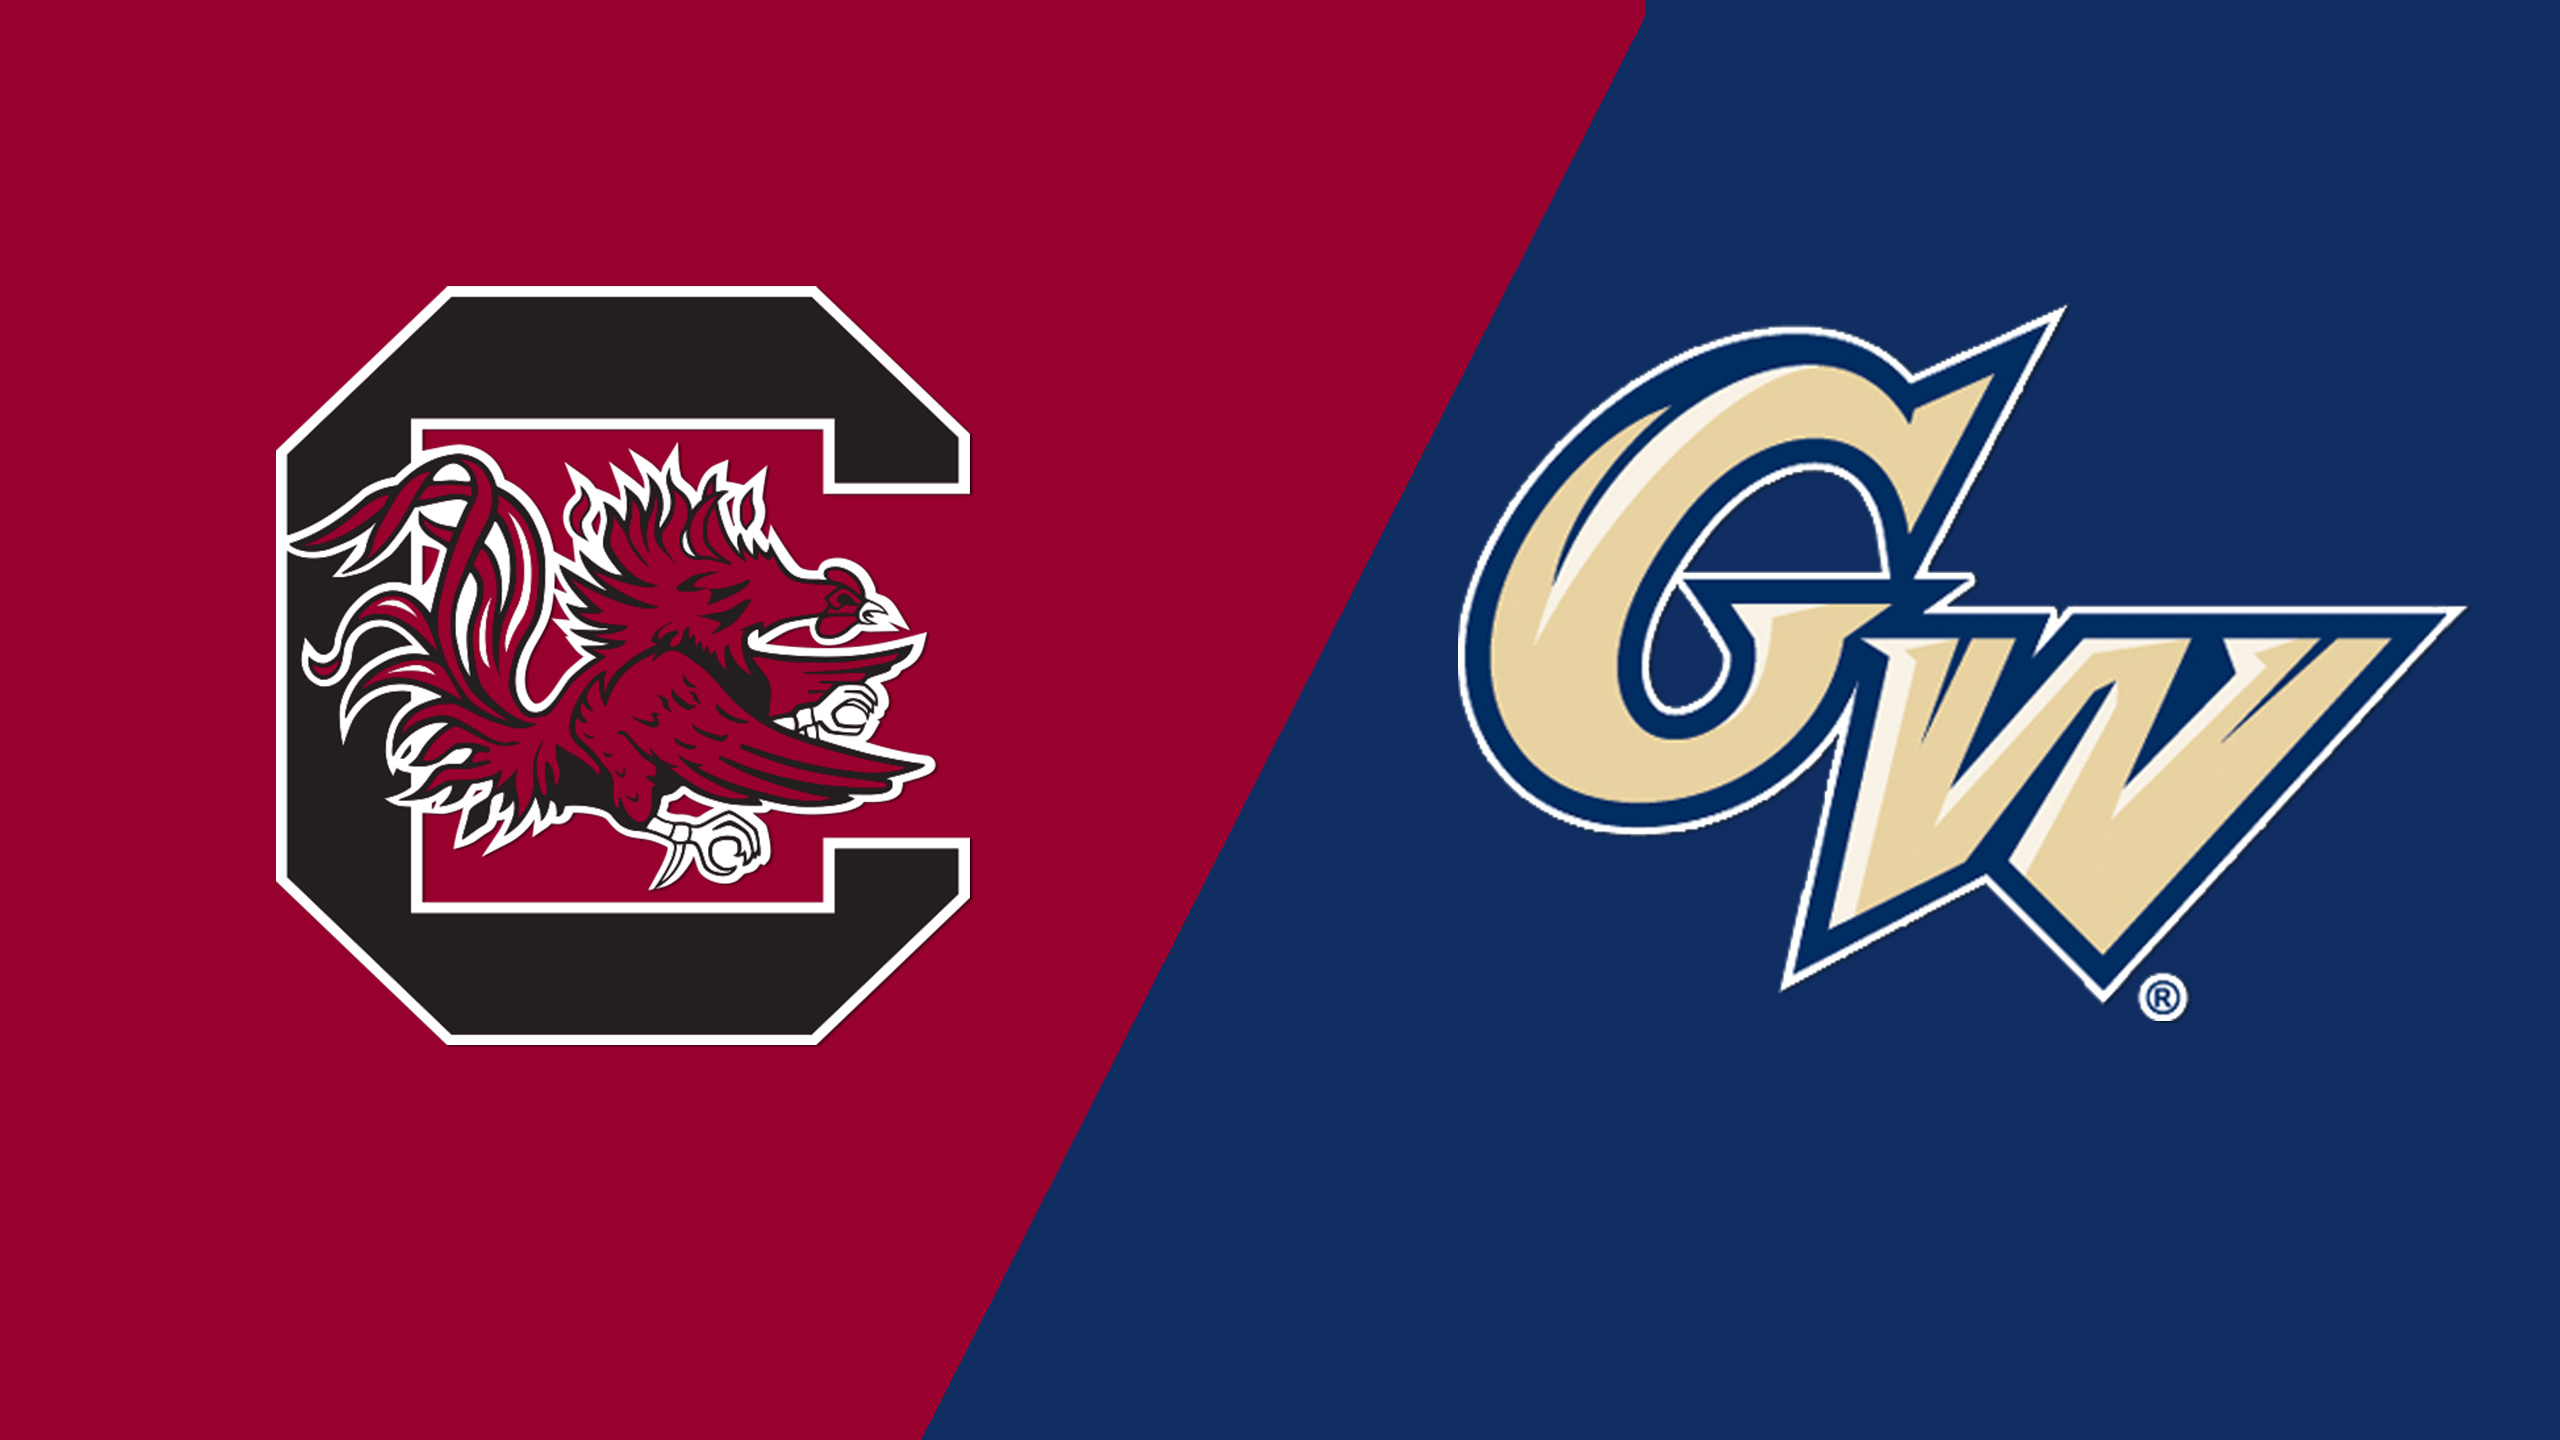 South Carolina vs. George Washington (3rd Place Game) (Hall of Fame Tip-Off)